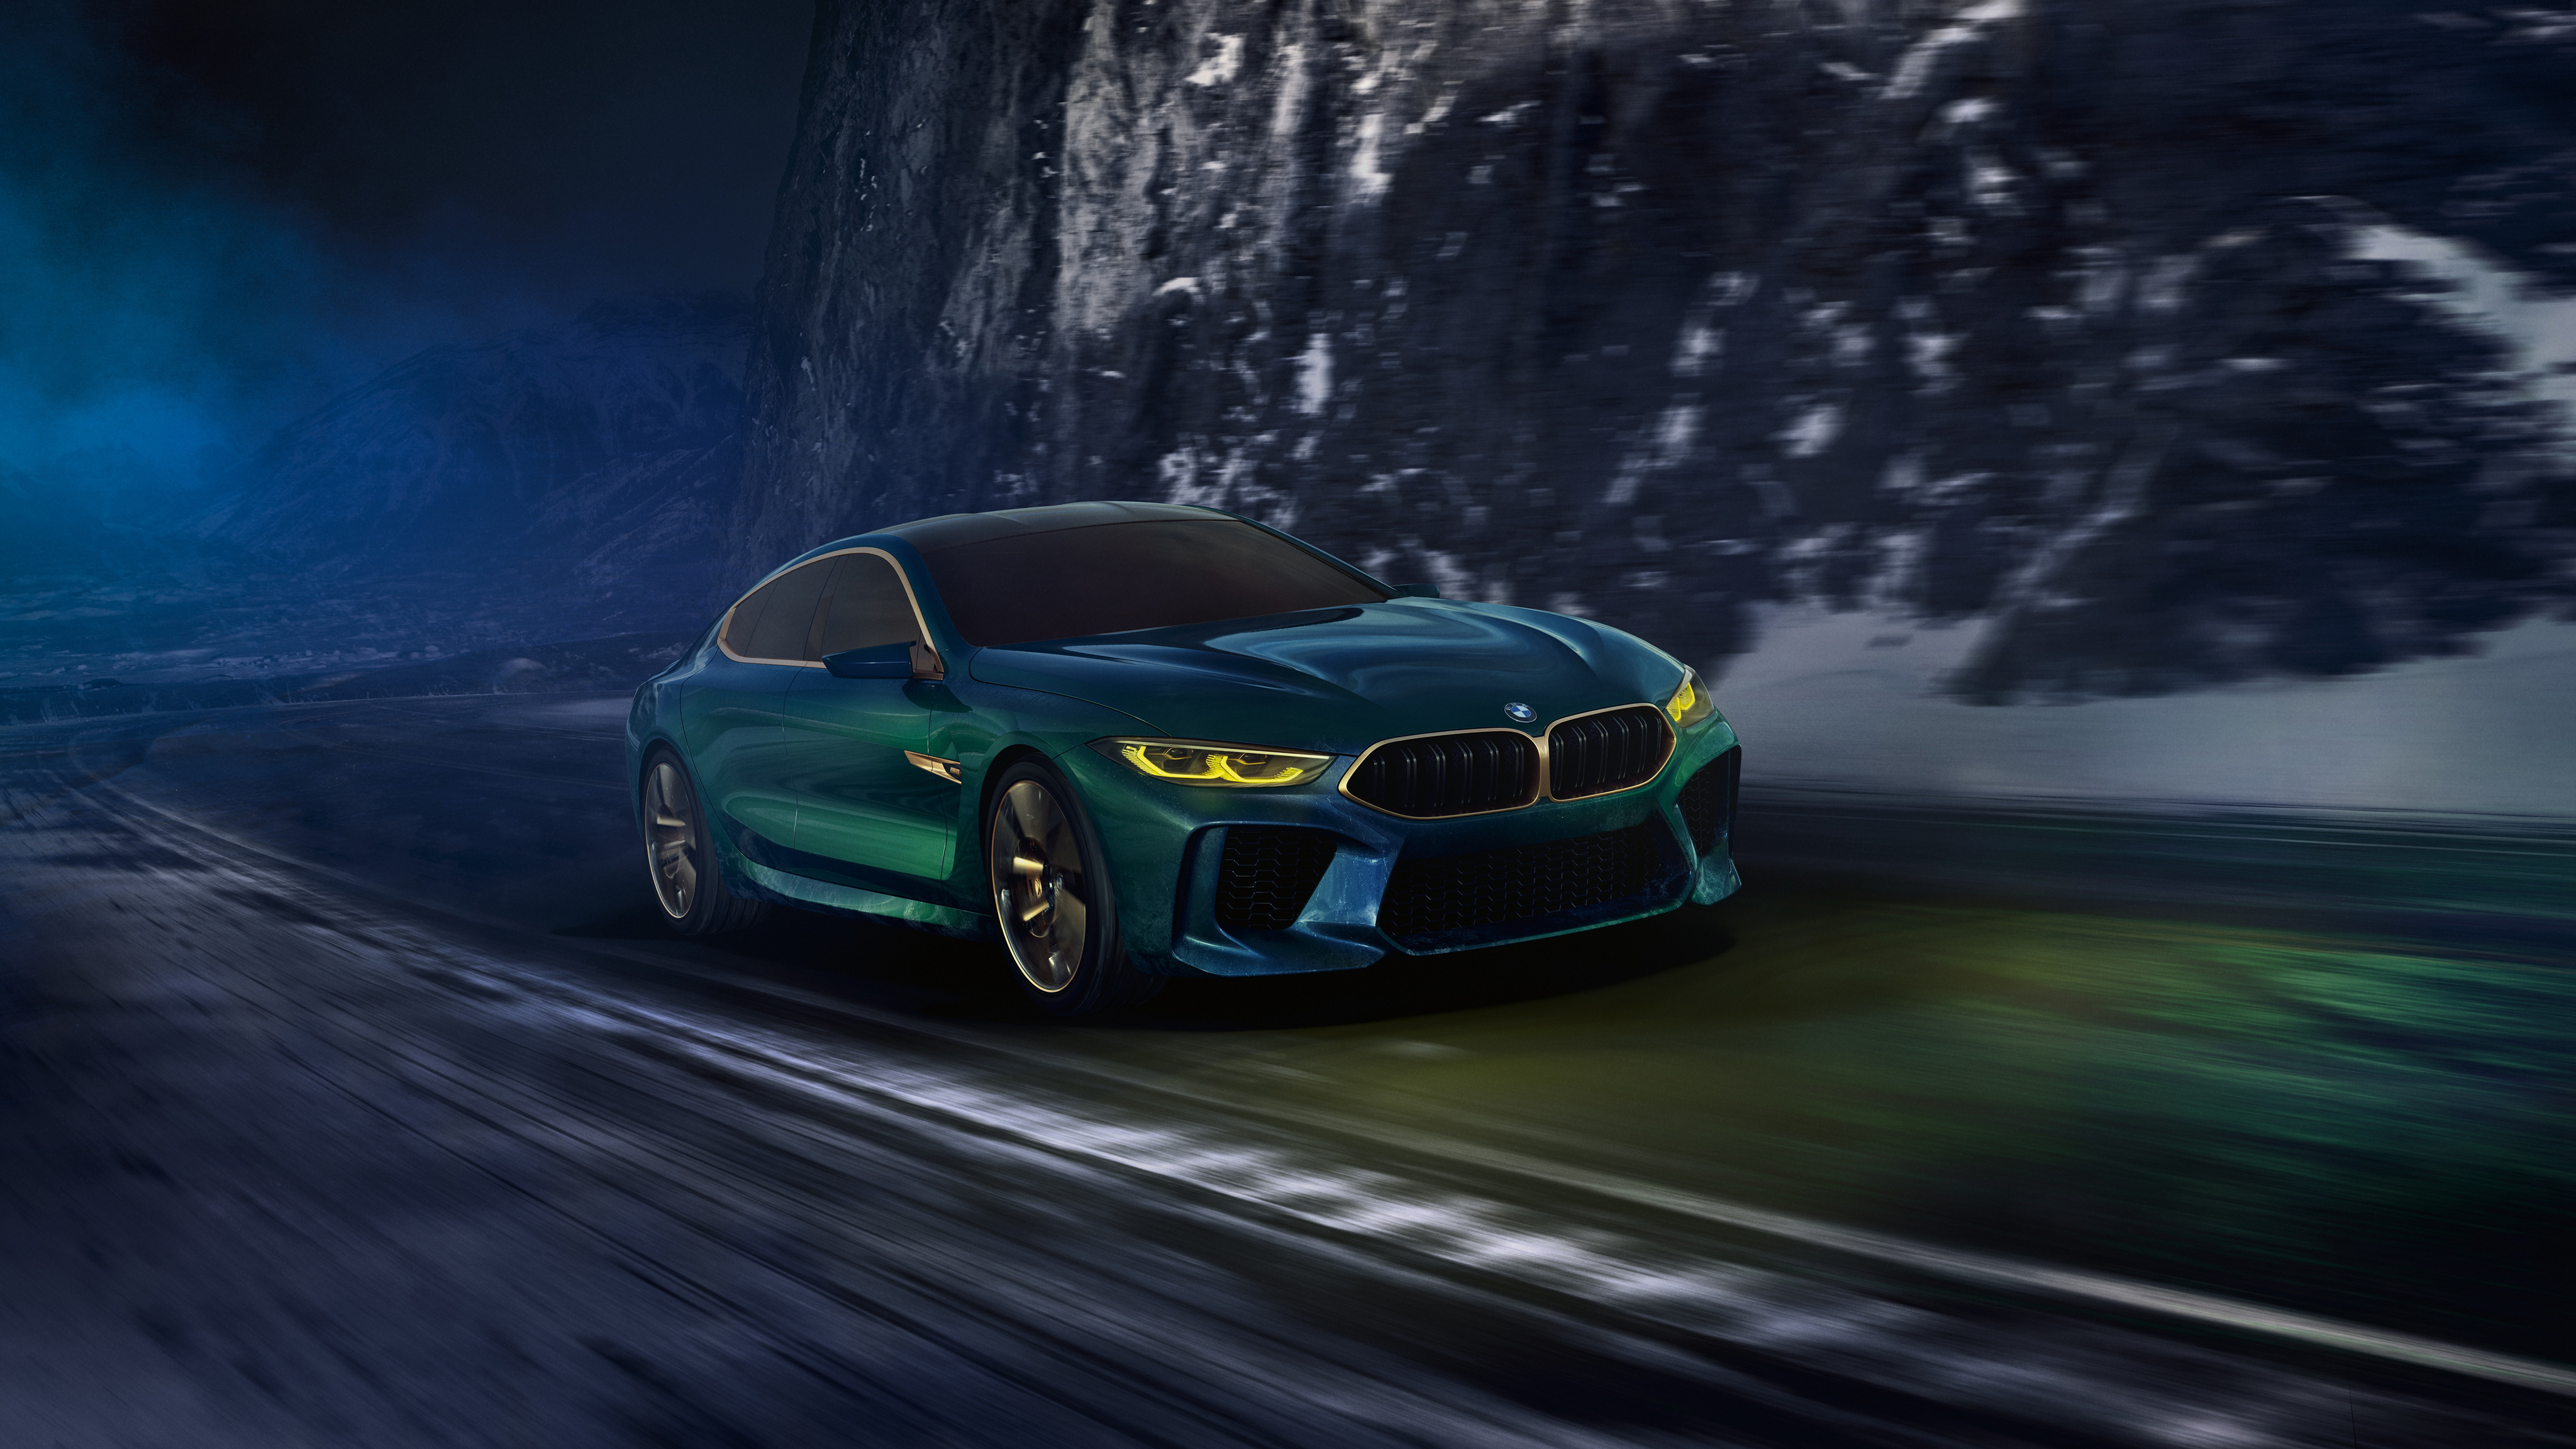 2018 Bmw Concept M8 Gran Coupe 4k 9 Wallpaper Hd Car Wallpapers Id 9913